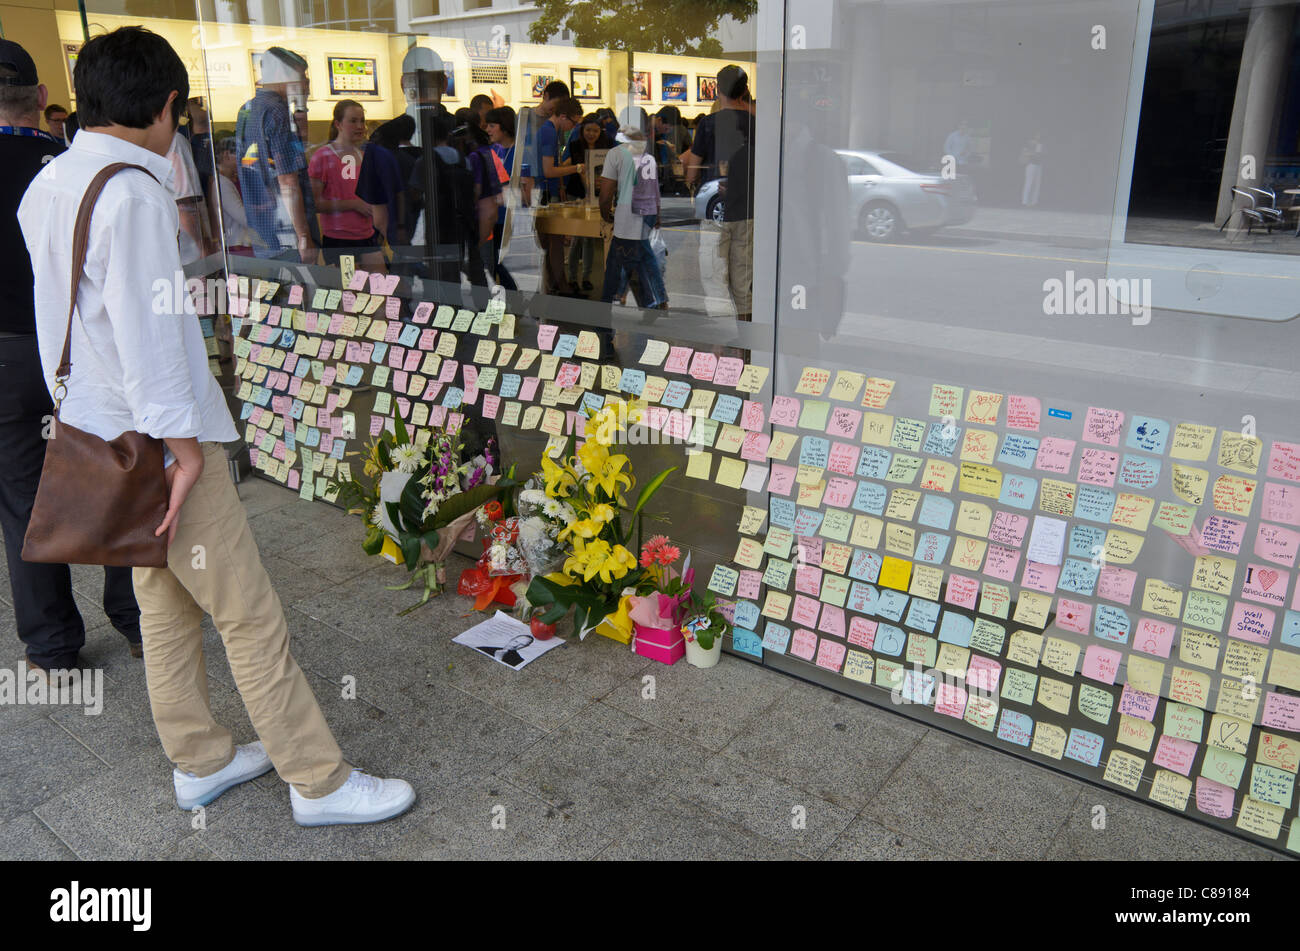 A man looks at the post-it note tributes on the window of an Apple Store in Perth, Western Australia - Stock Image